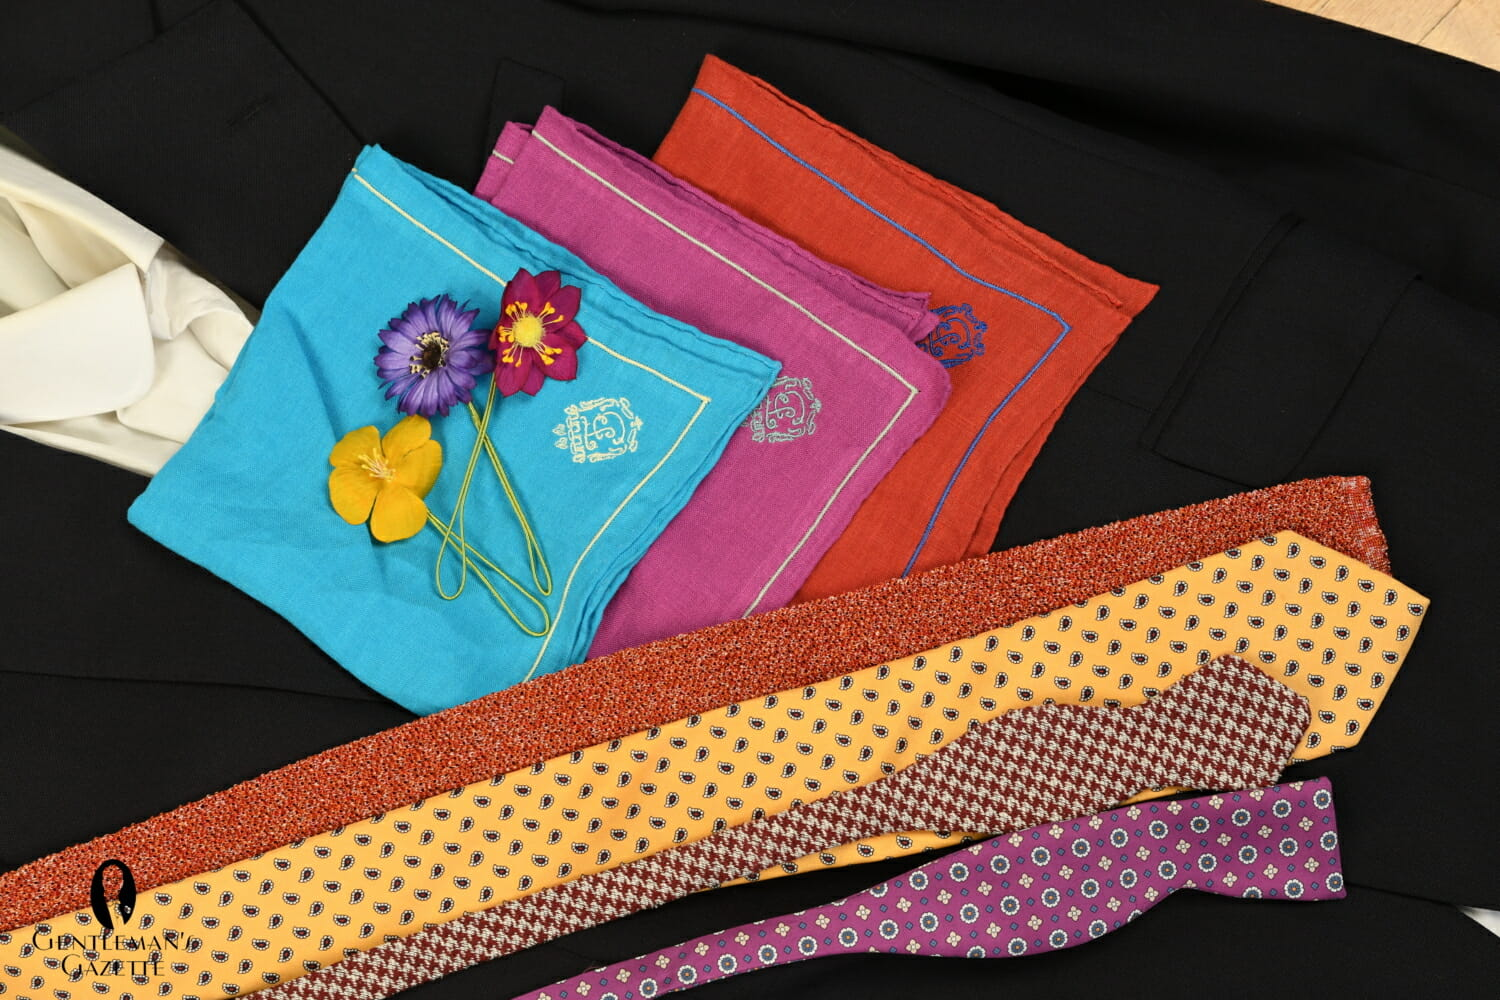 A colorful selection of Fort Belvedere accessories